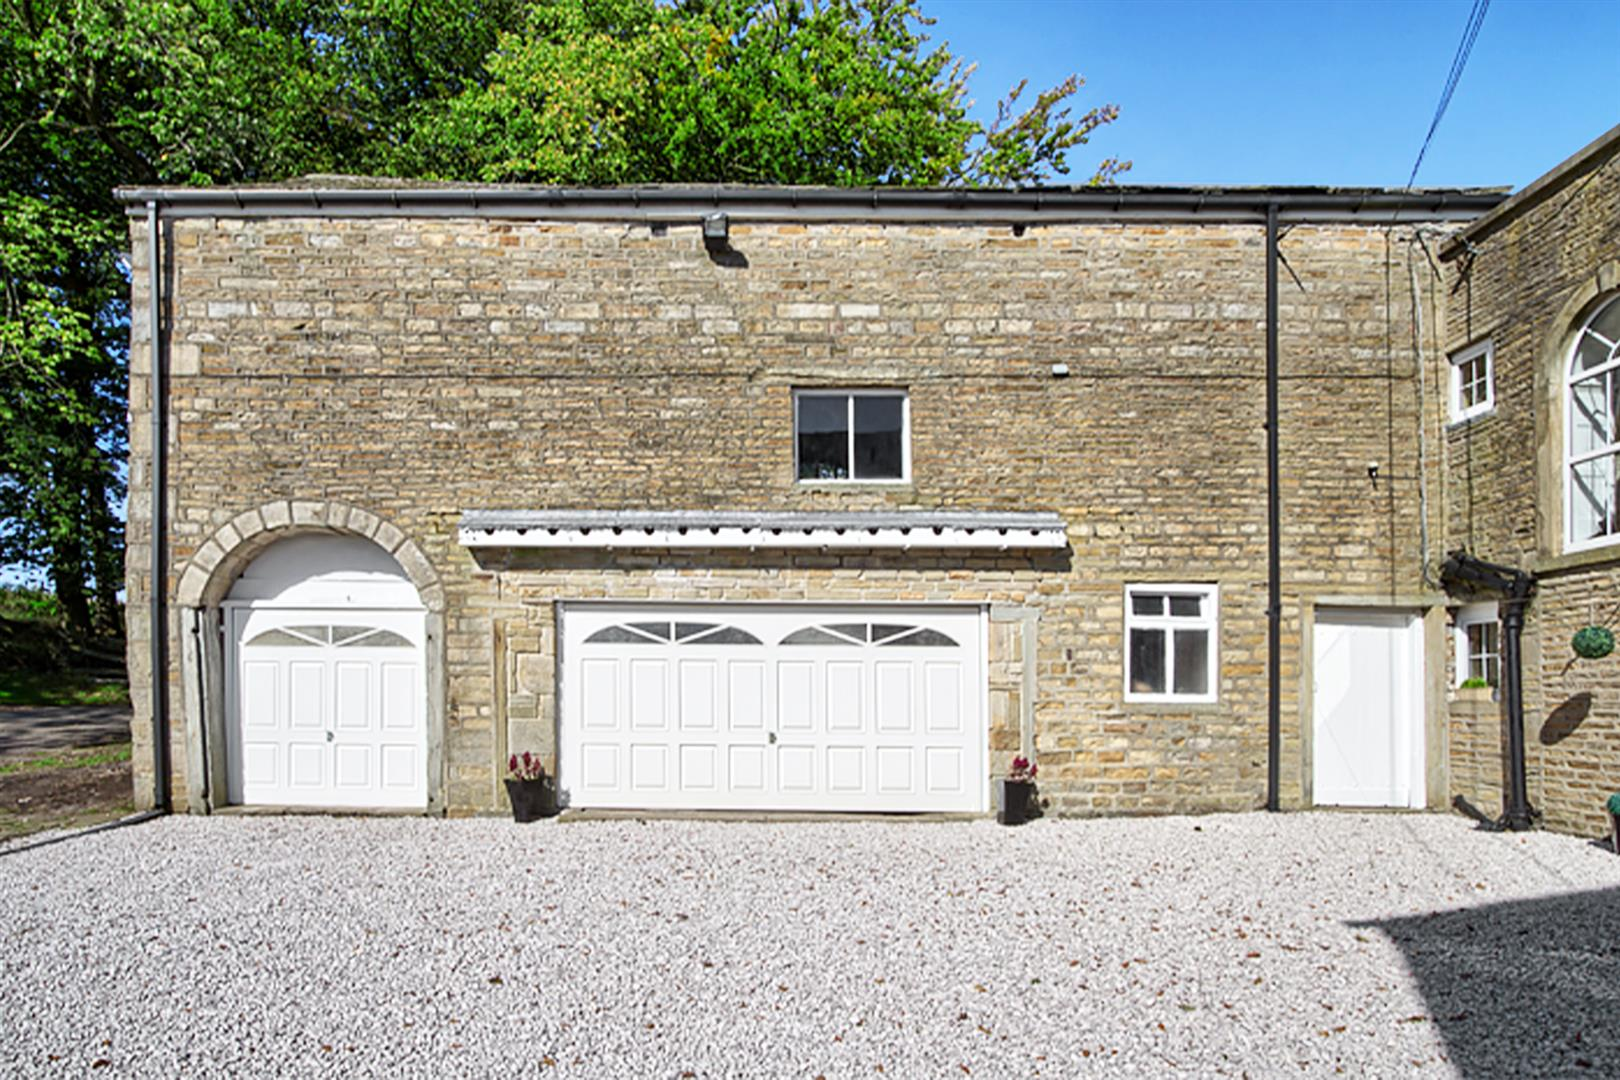 4 bedroom house For Sale in Bolton - barn.png.